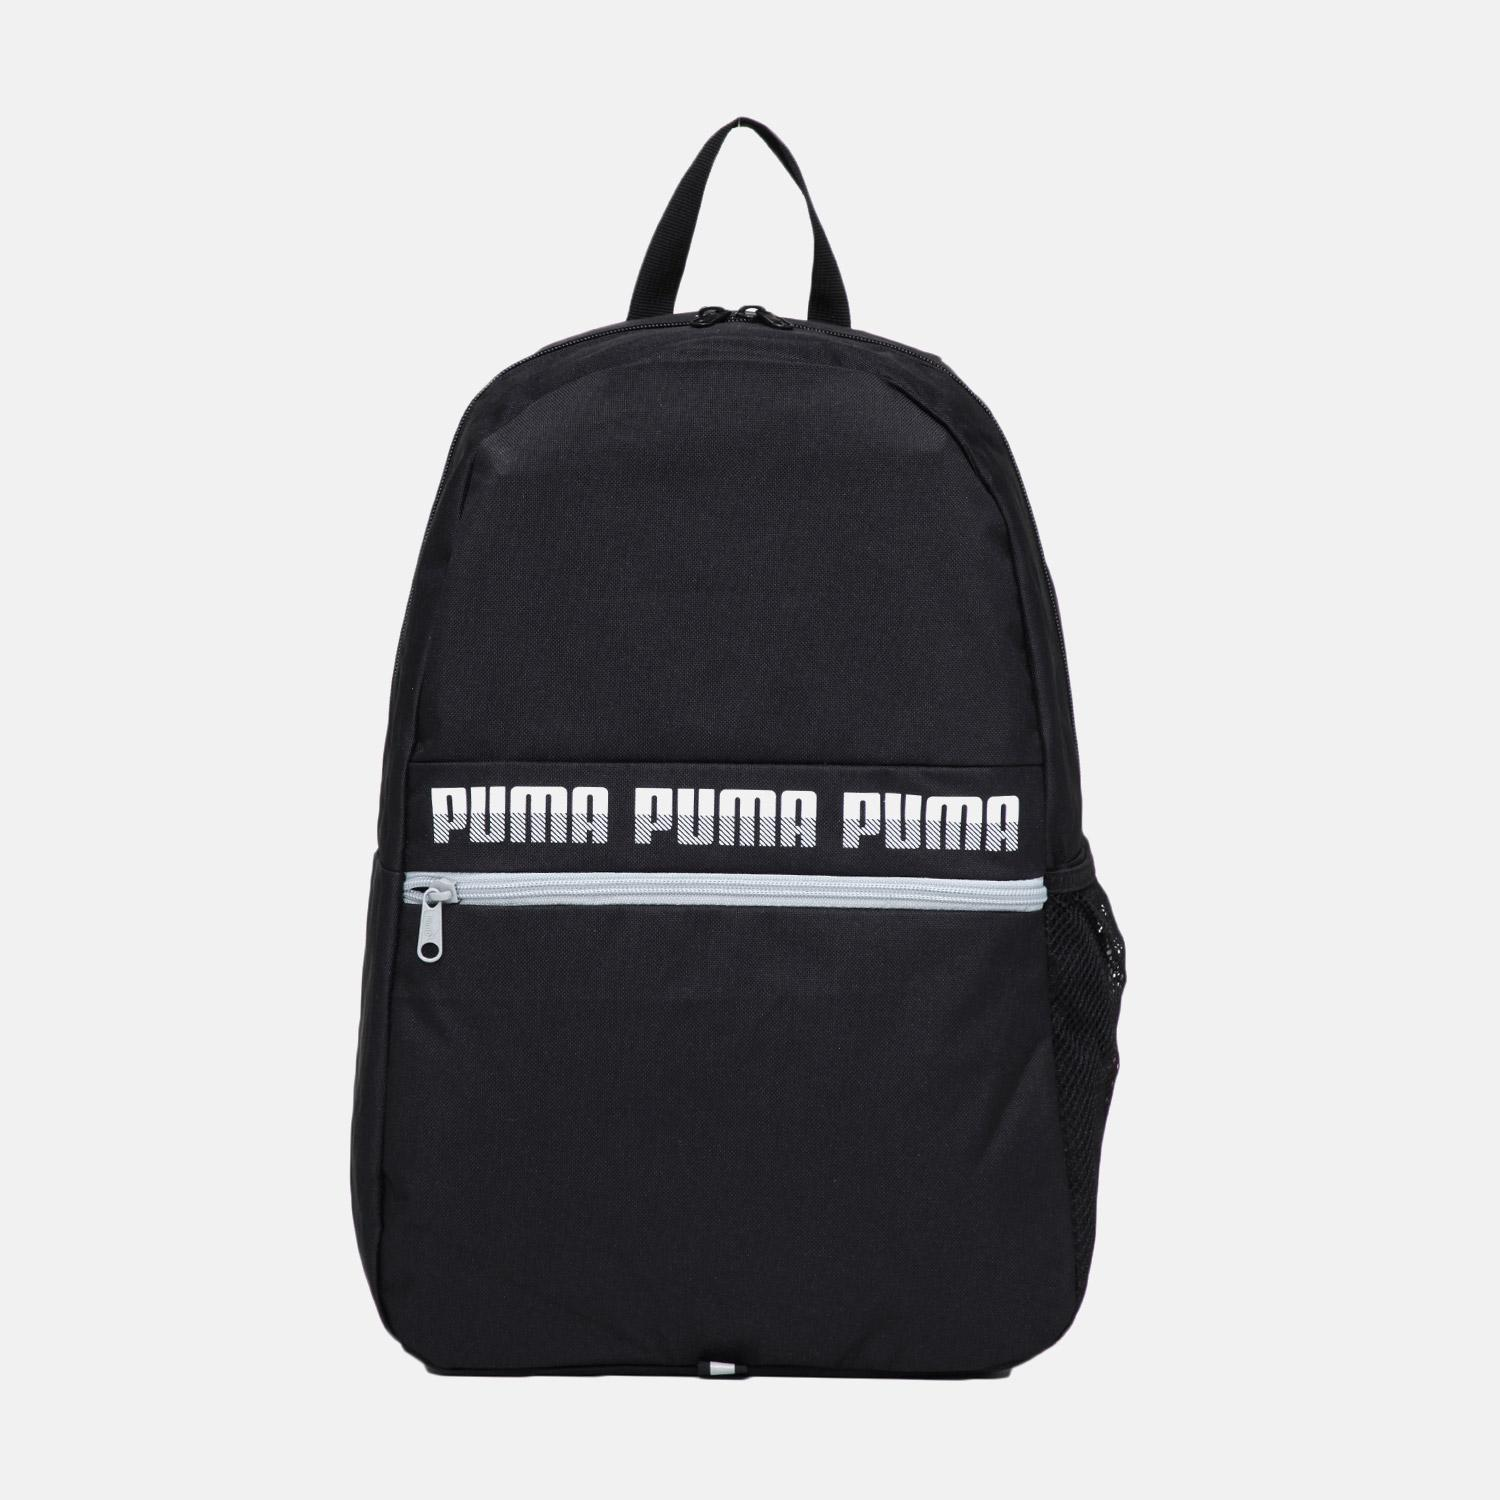 Buy   Sell Cheapest PUMA GAVETTO II Best Quality Product Deals ... 8224c766ce